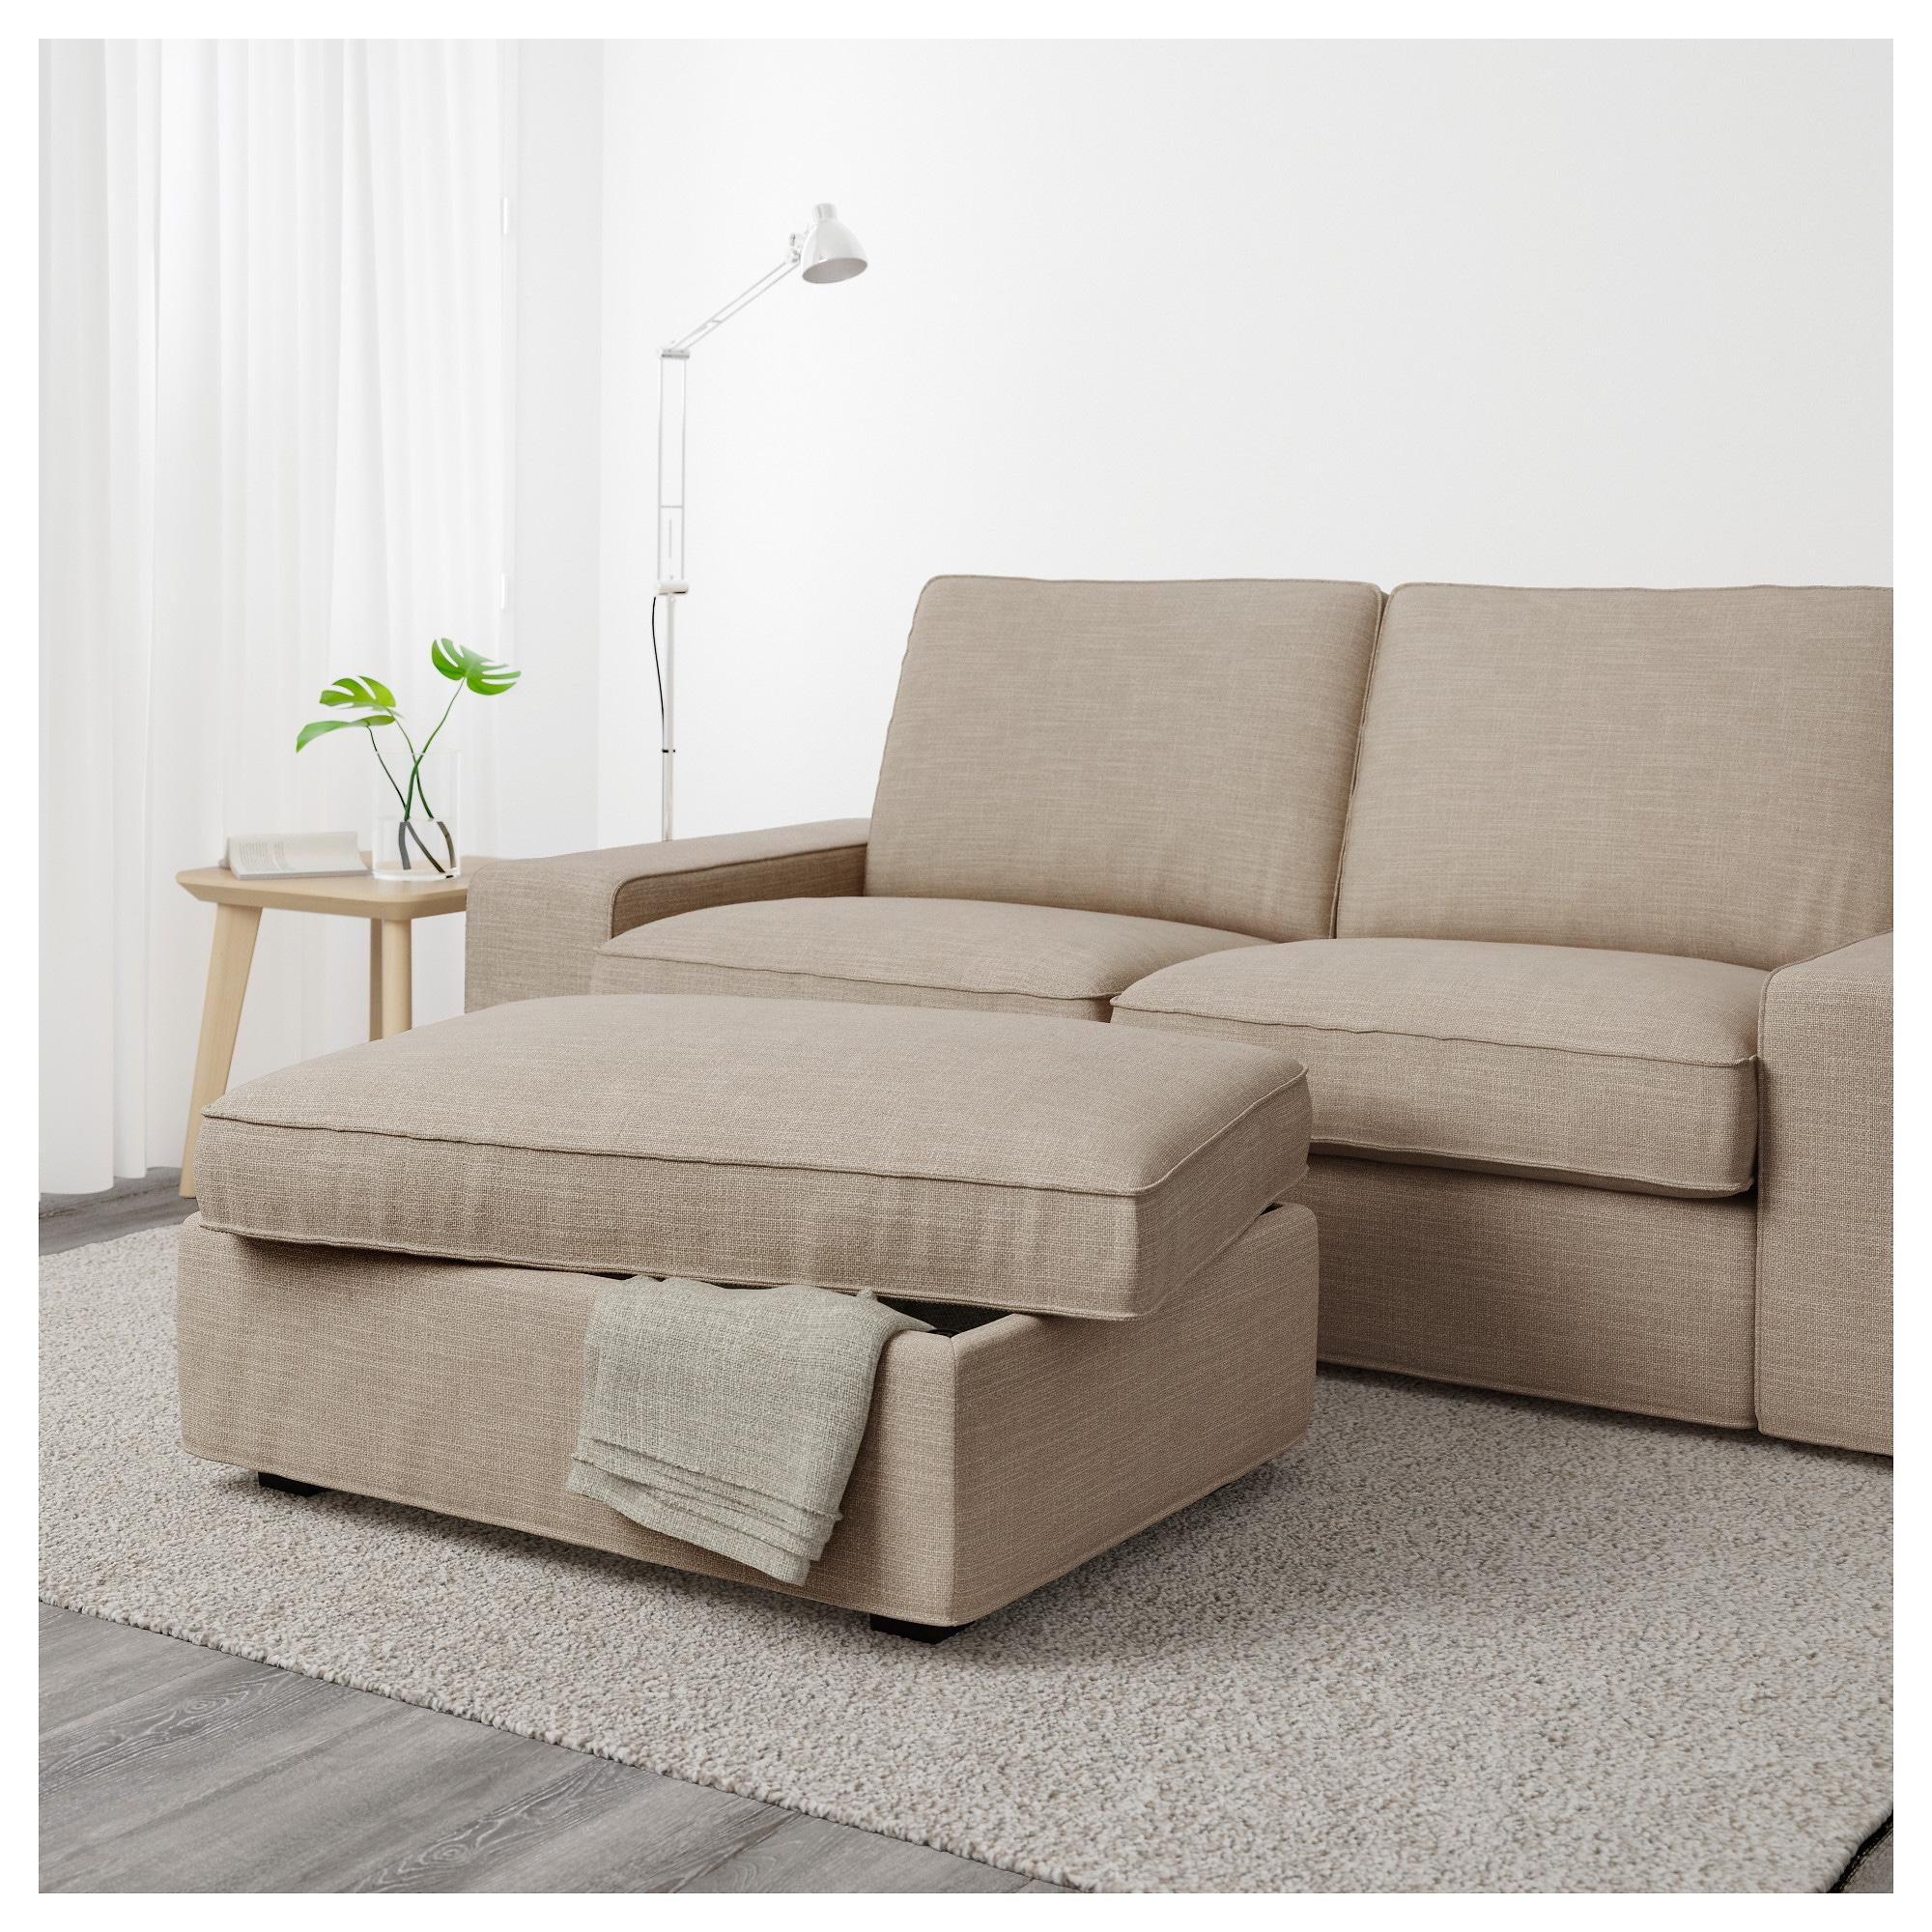 KIVIK Footstool with storage Orrsta light grey IKEA